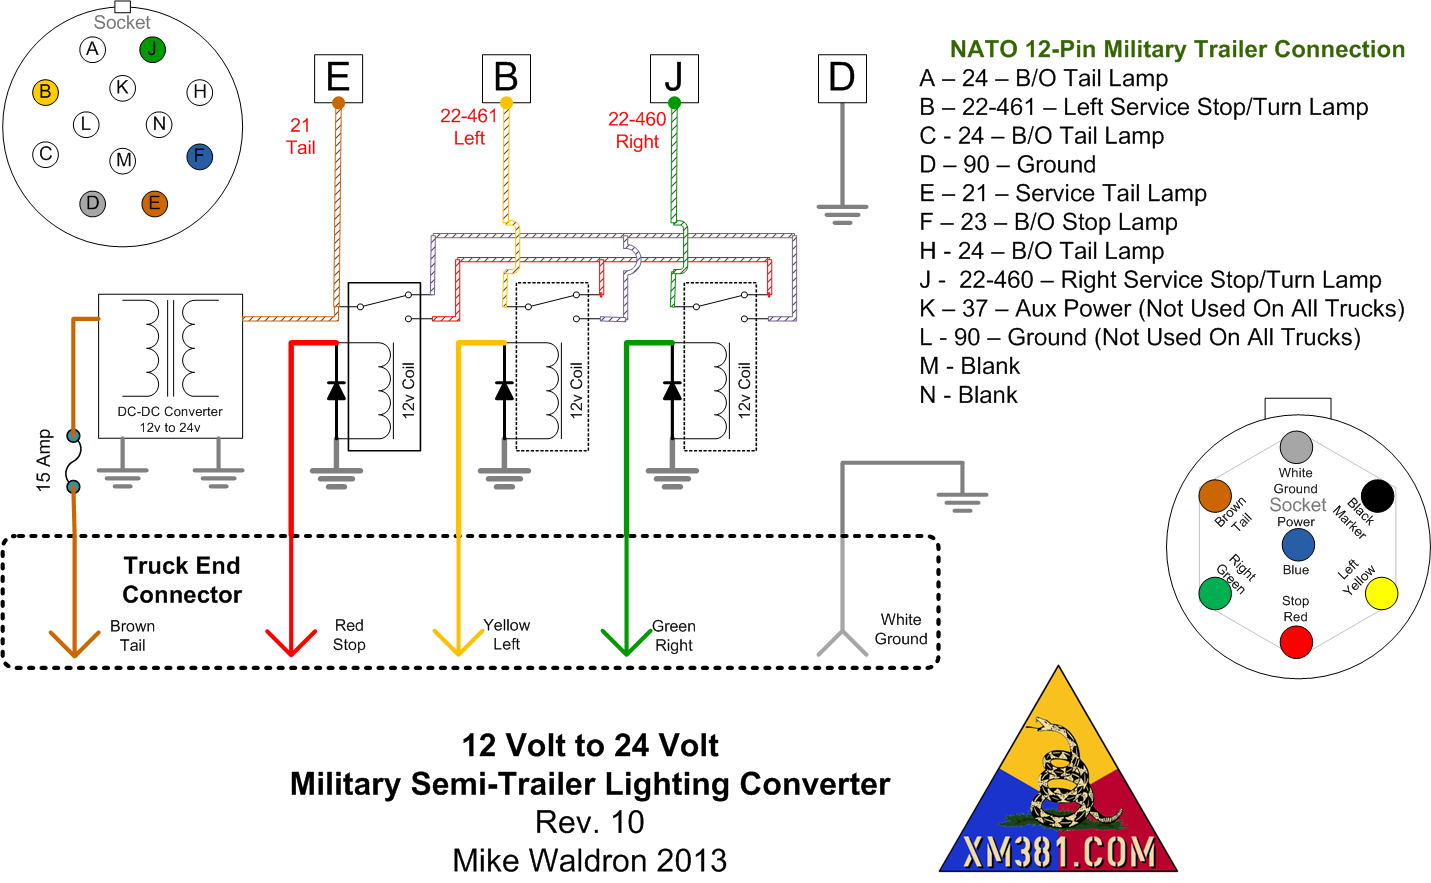 Semi Truck Trailer Plug Wiring Diagram | Wiring Schematic Diagram on 7 prong trailer plug diagram, 7 pin tow wiring, 7 pin rv plug out way, 7 pin plug connector, 7 pin trailer wiring, 7 pin plug ford, 7 round trailer plug diagram, 7 pin trailer connection diagram, 7 rv plug diagram, 7 pronge trailer connector diagram, 7 pin trailer harness diagram,